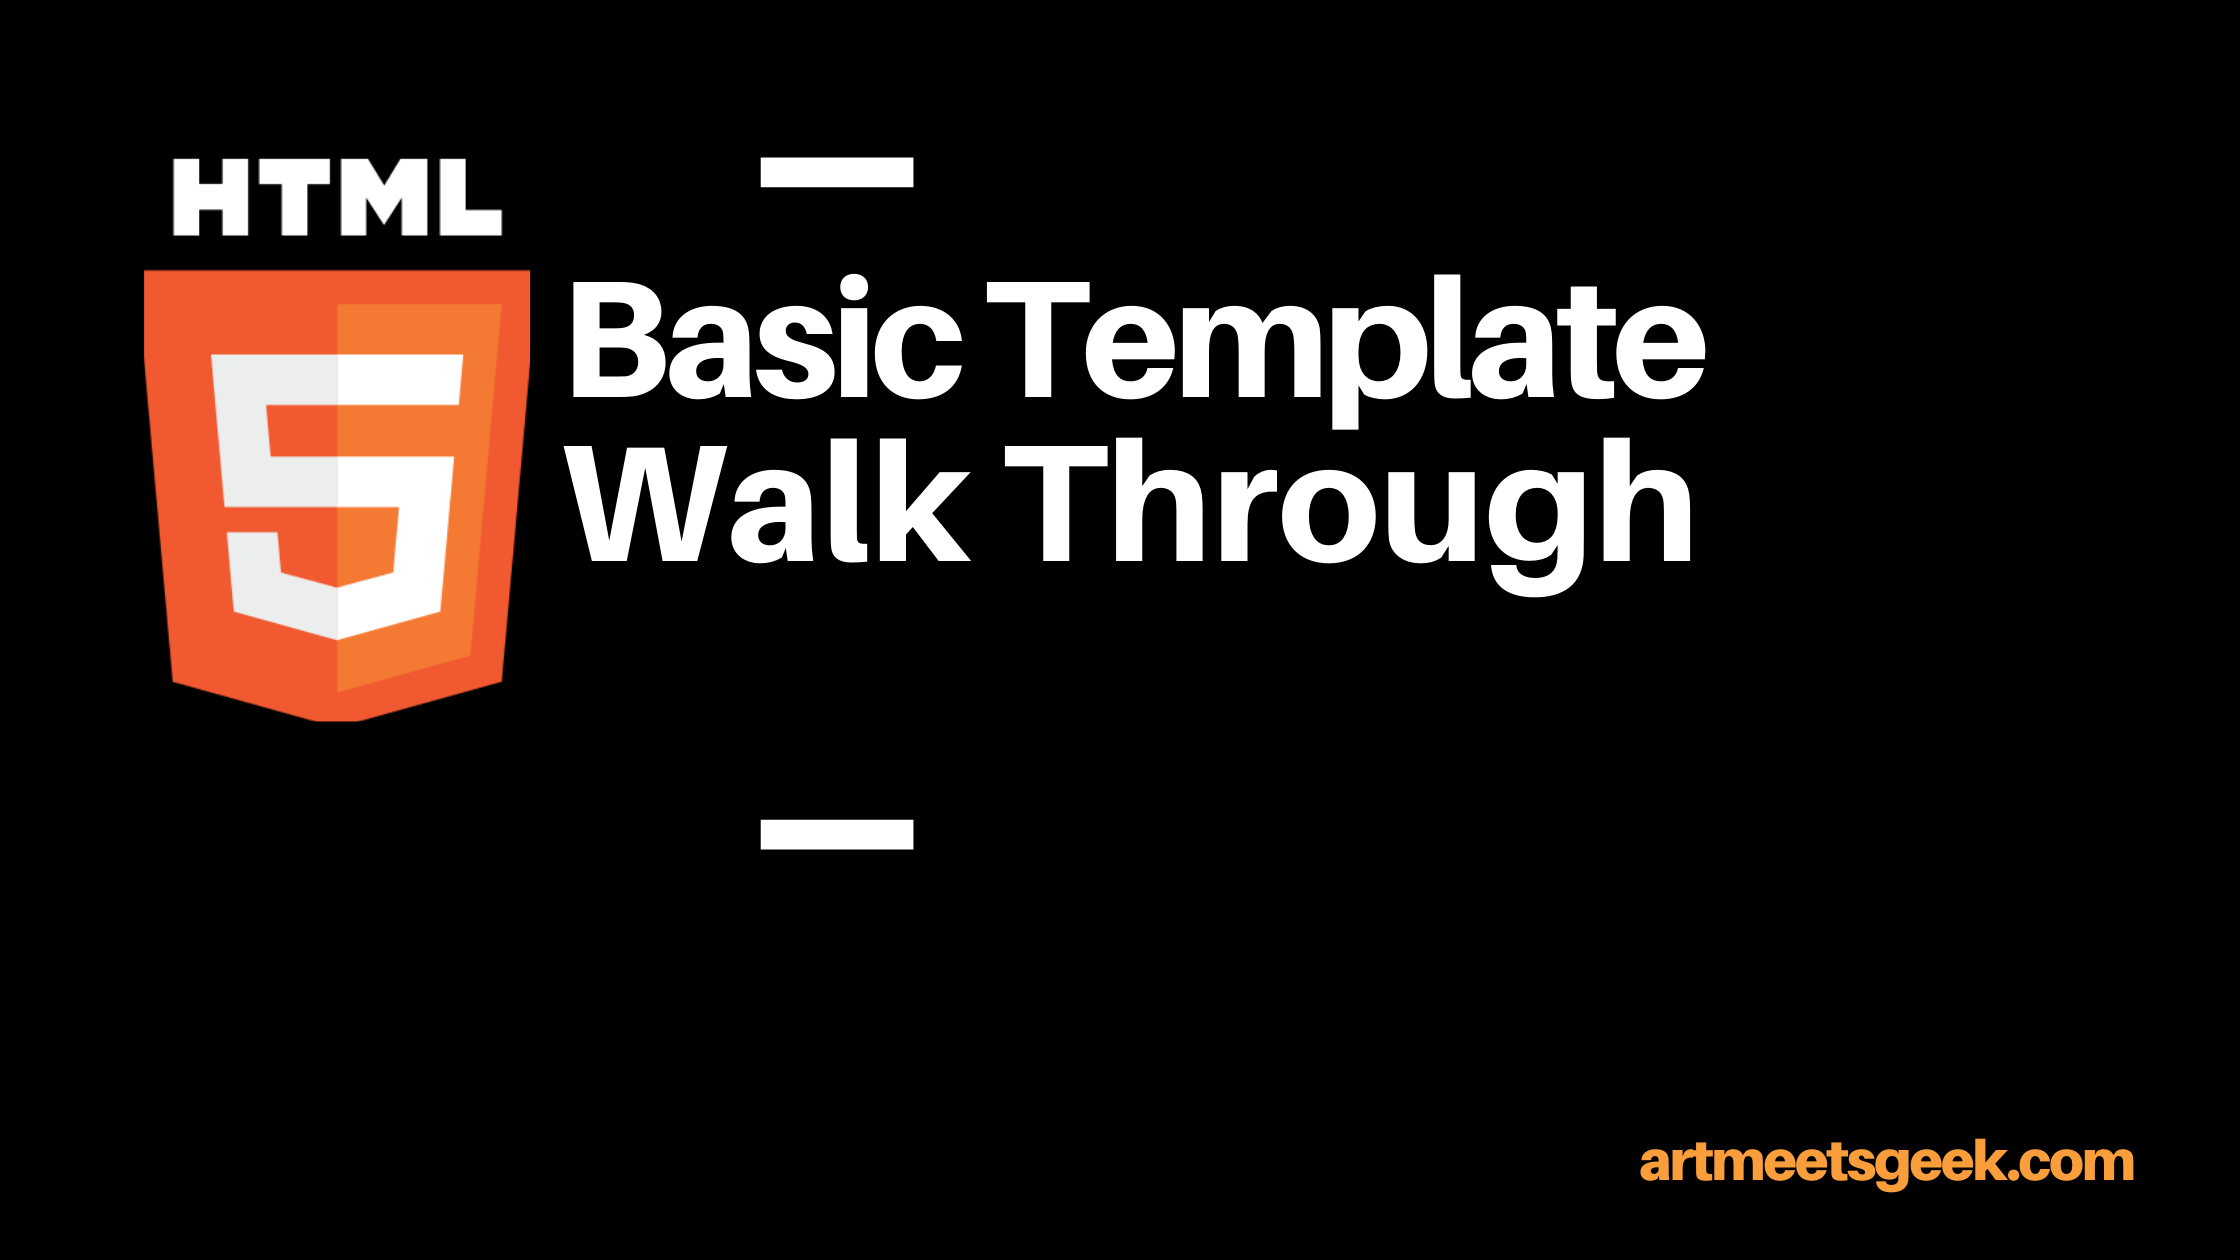 Title Header: HTML5 Basic Template Walk Through.